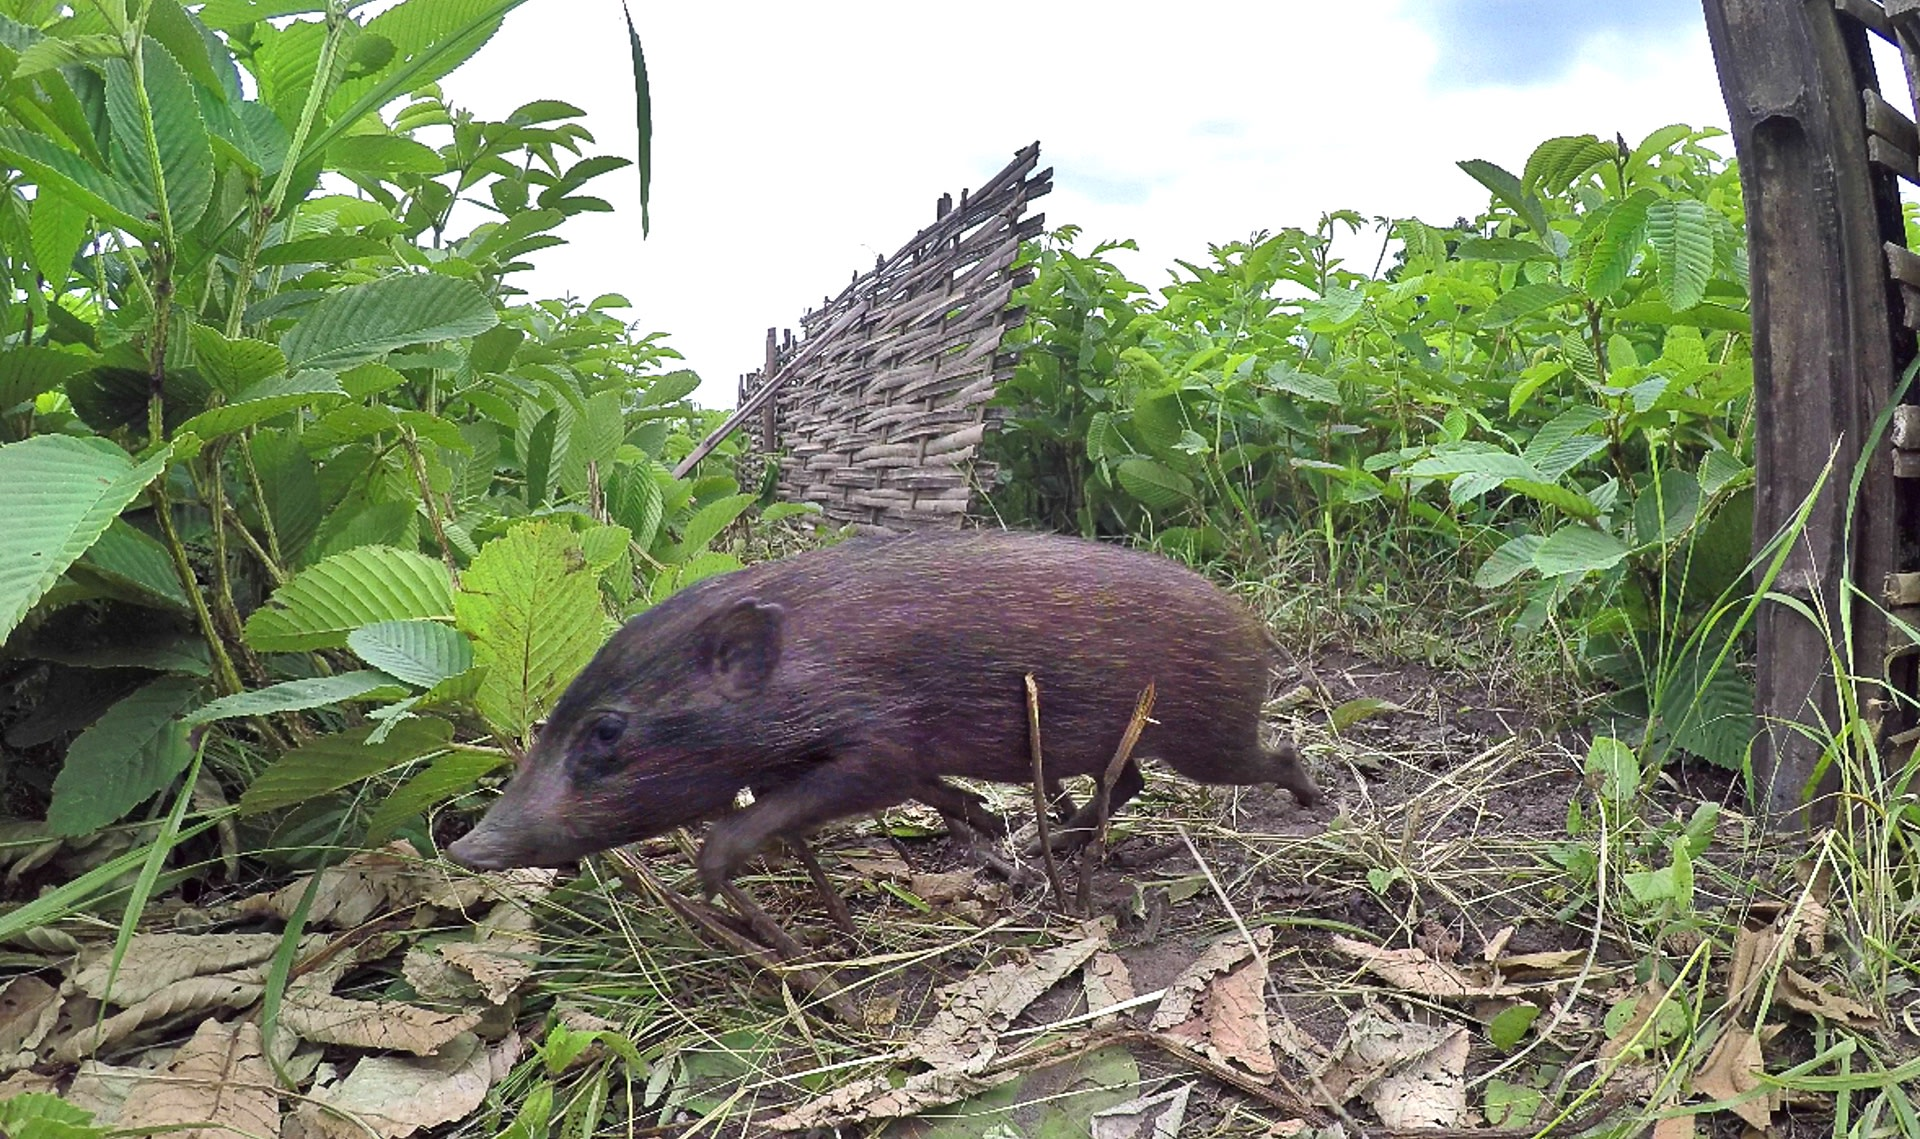 Captive-raised pygmy hogs were released in the Sonai-Rupai and Barnadi Wildlife Sanctuaries and the Orang National Park in Assam, where their population has increased to around 200. Photo: Udayan Borthakur